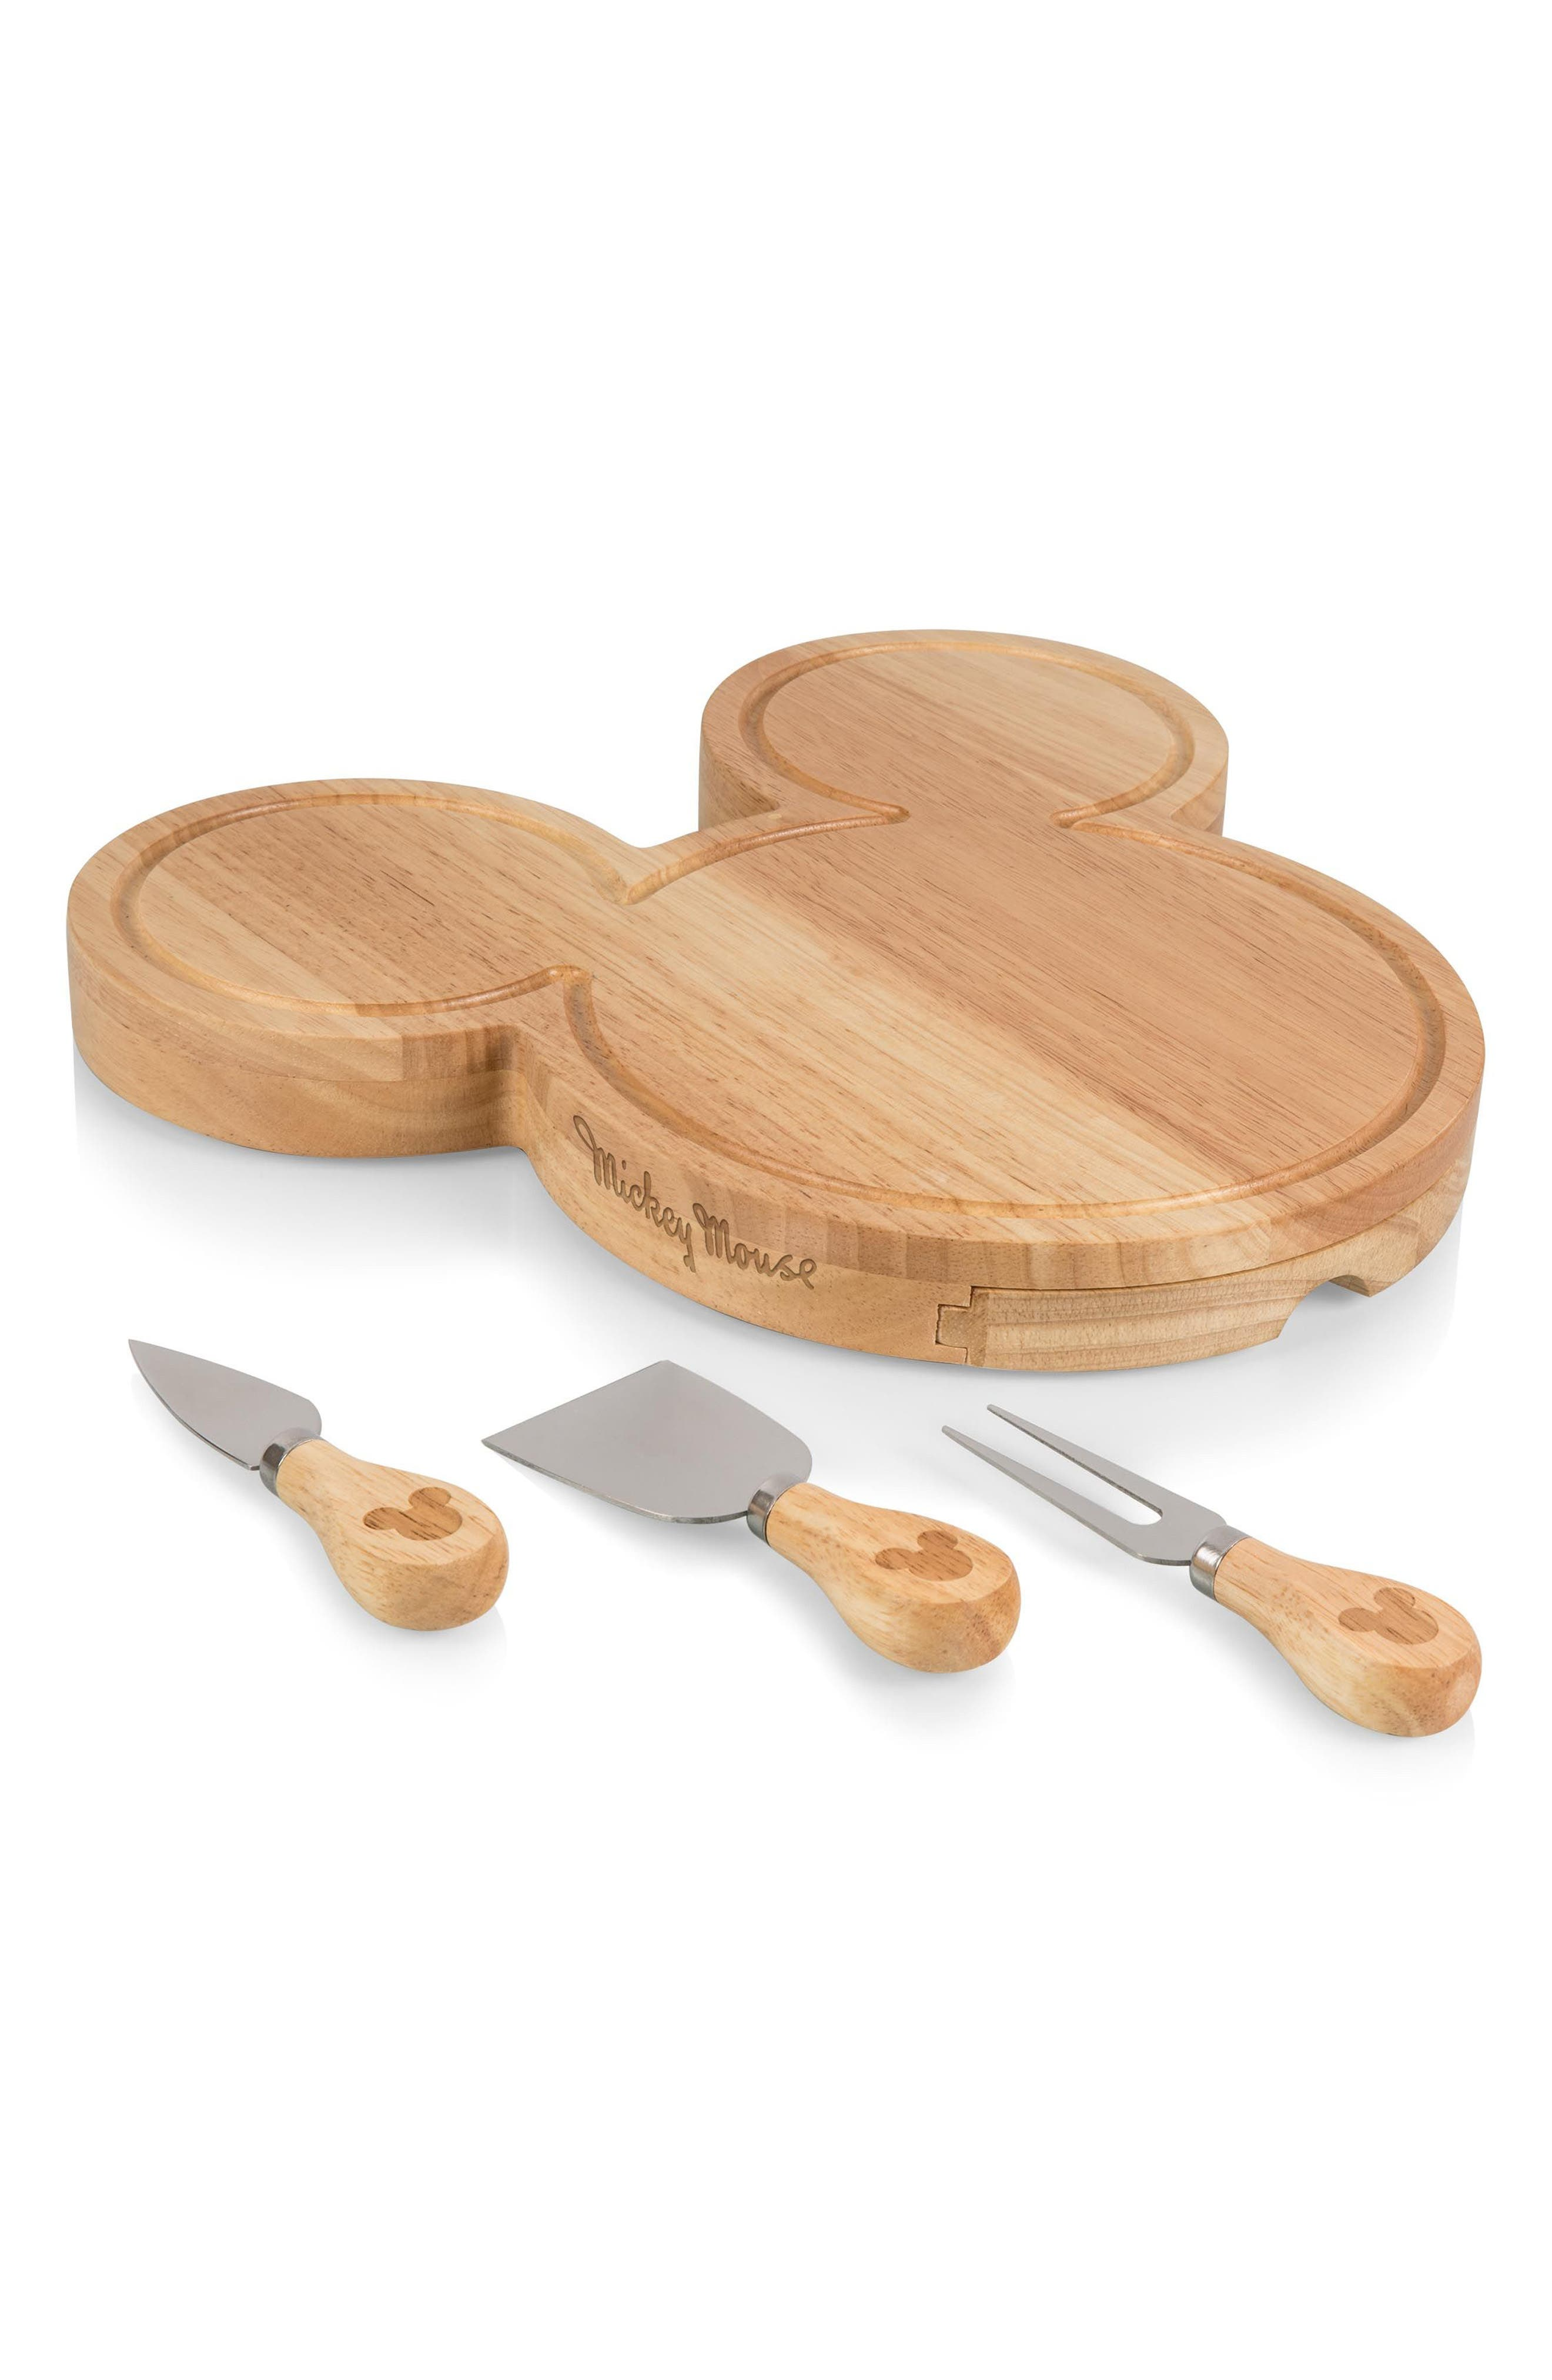 Disney - Mickey Mouse 4-Piece Cheese Board Set,                             Alternate thumbnail 2, color,                             200